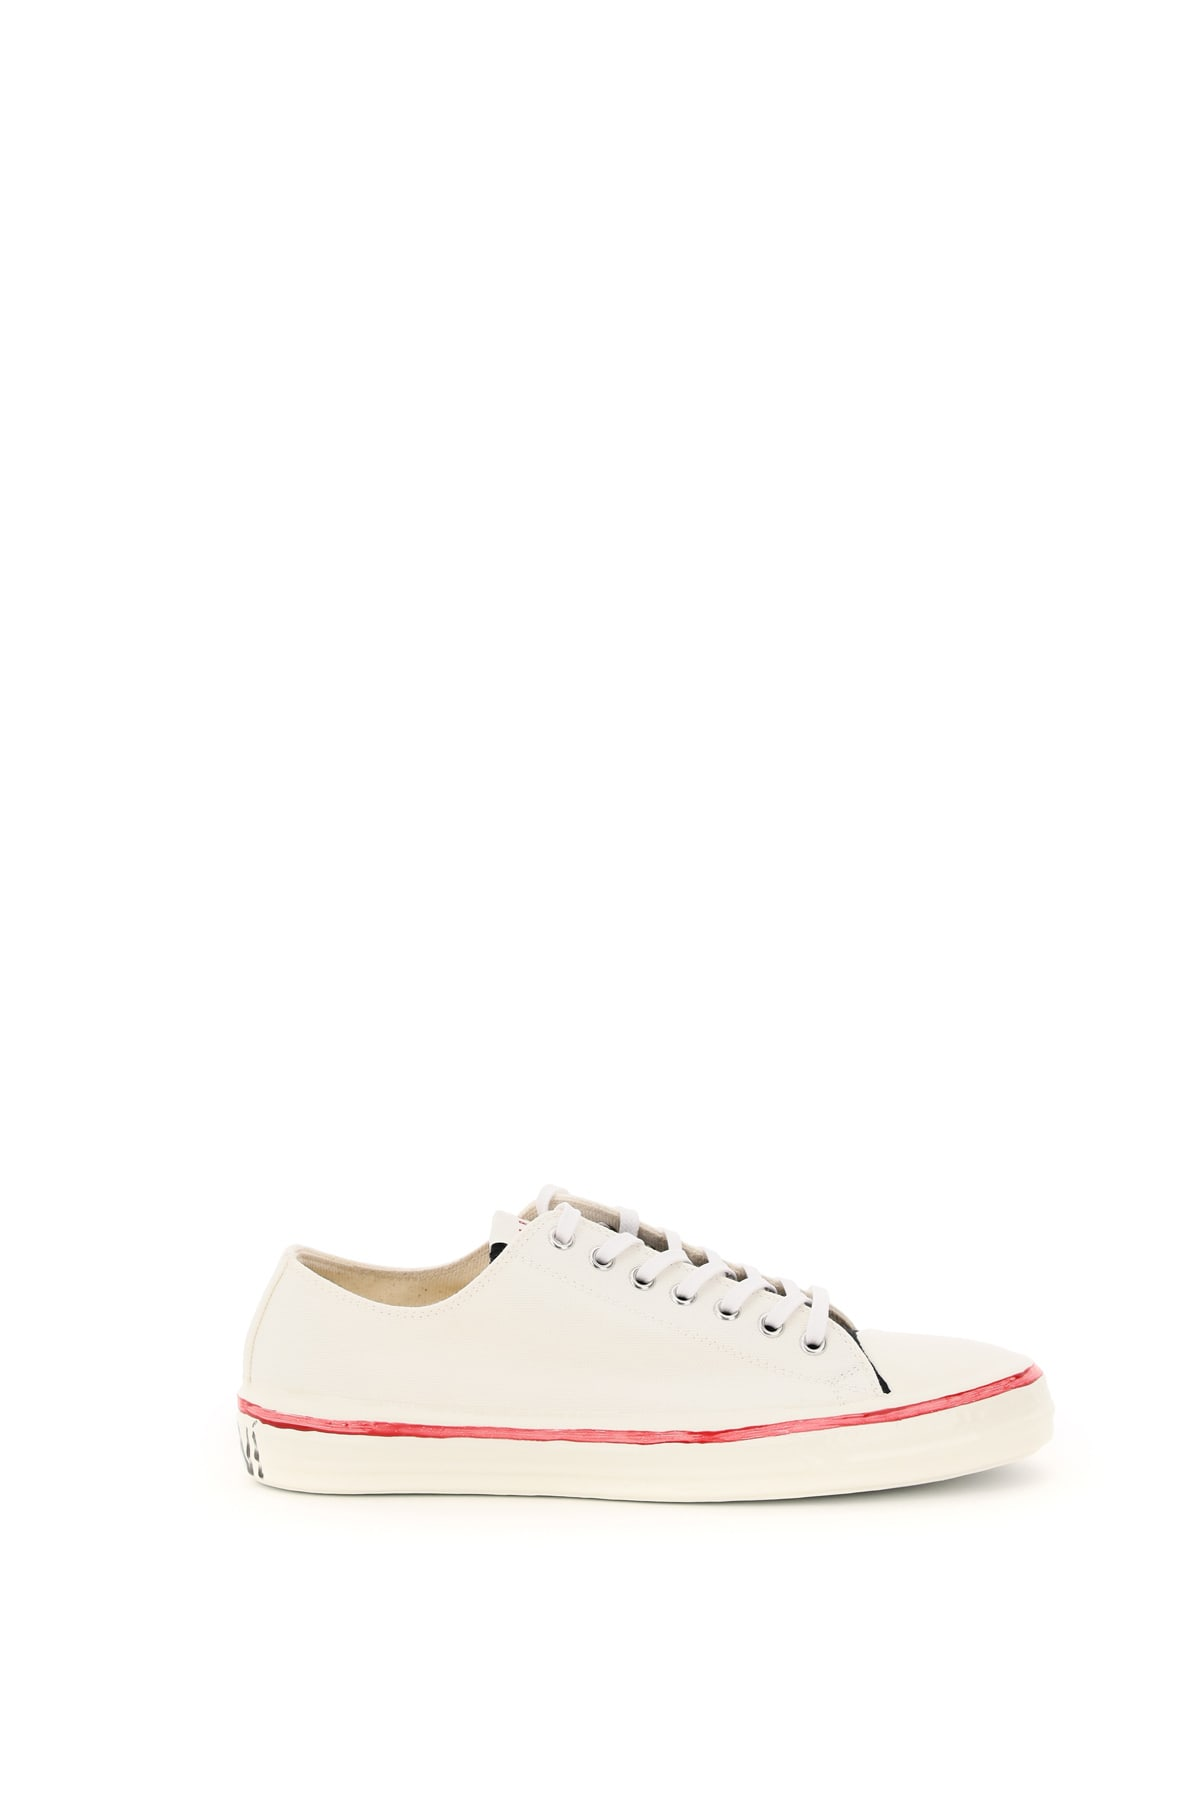 Marni GOOEY CANVAS SNEAKERS GRAFFITI LOGO